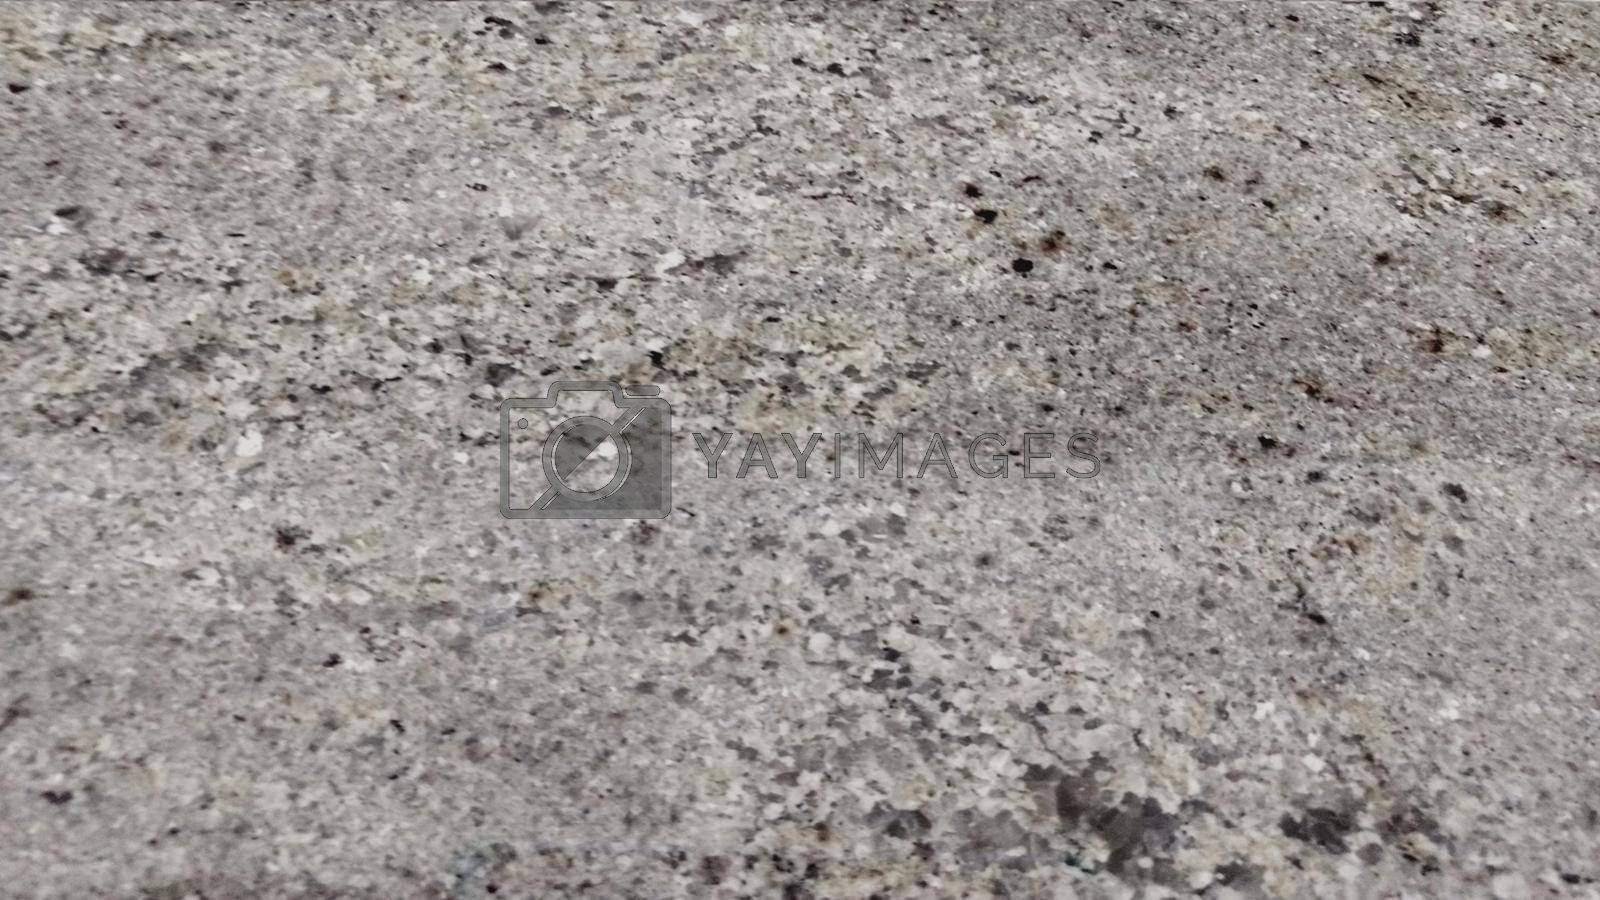 Natural Juparana Colombo granite stone texture background. Juparana Colombo granite surface for interior and exterior manufacturers use.